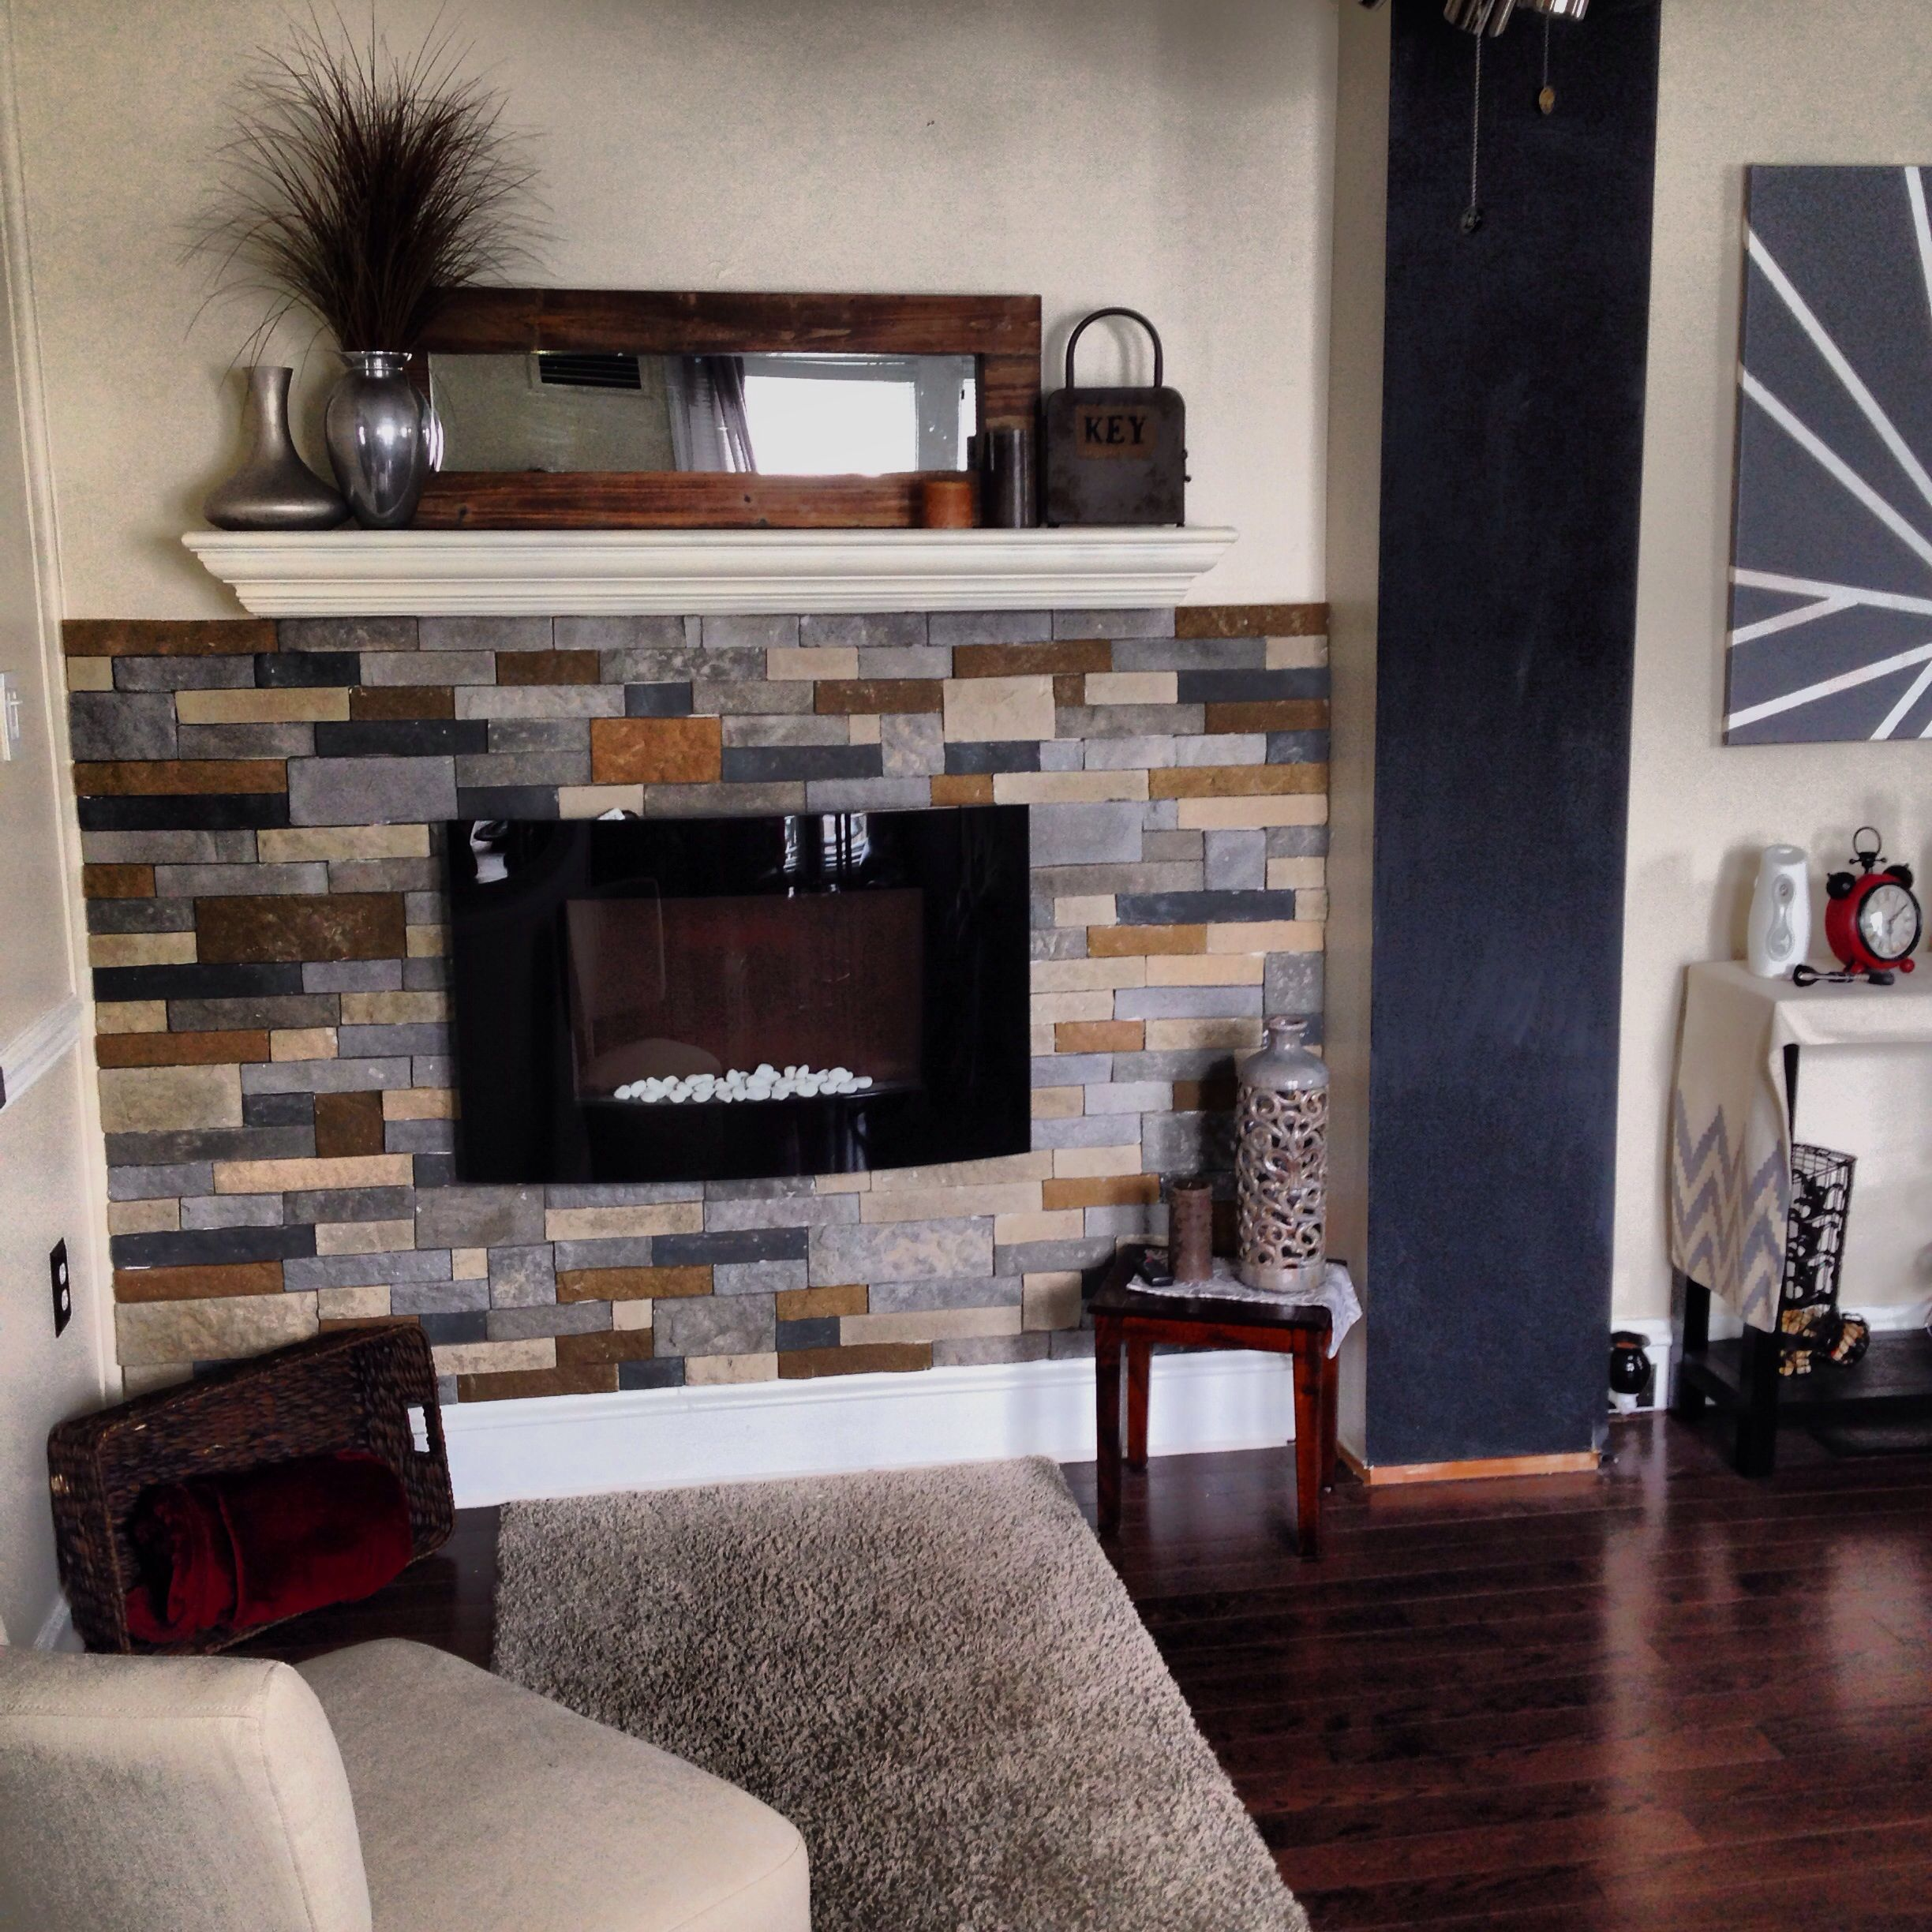 electric fireplace mantle and airstone home decor pinterest